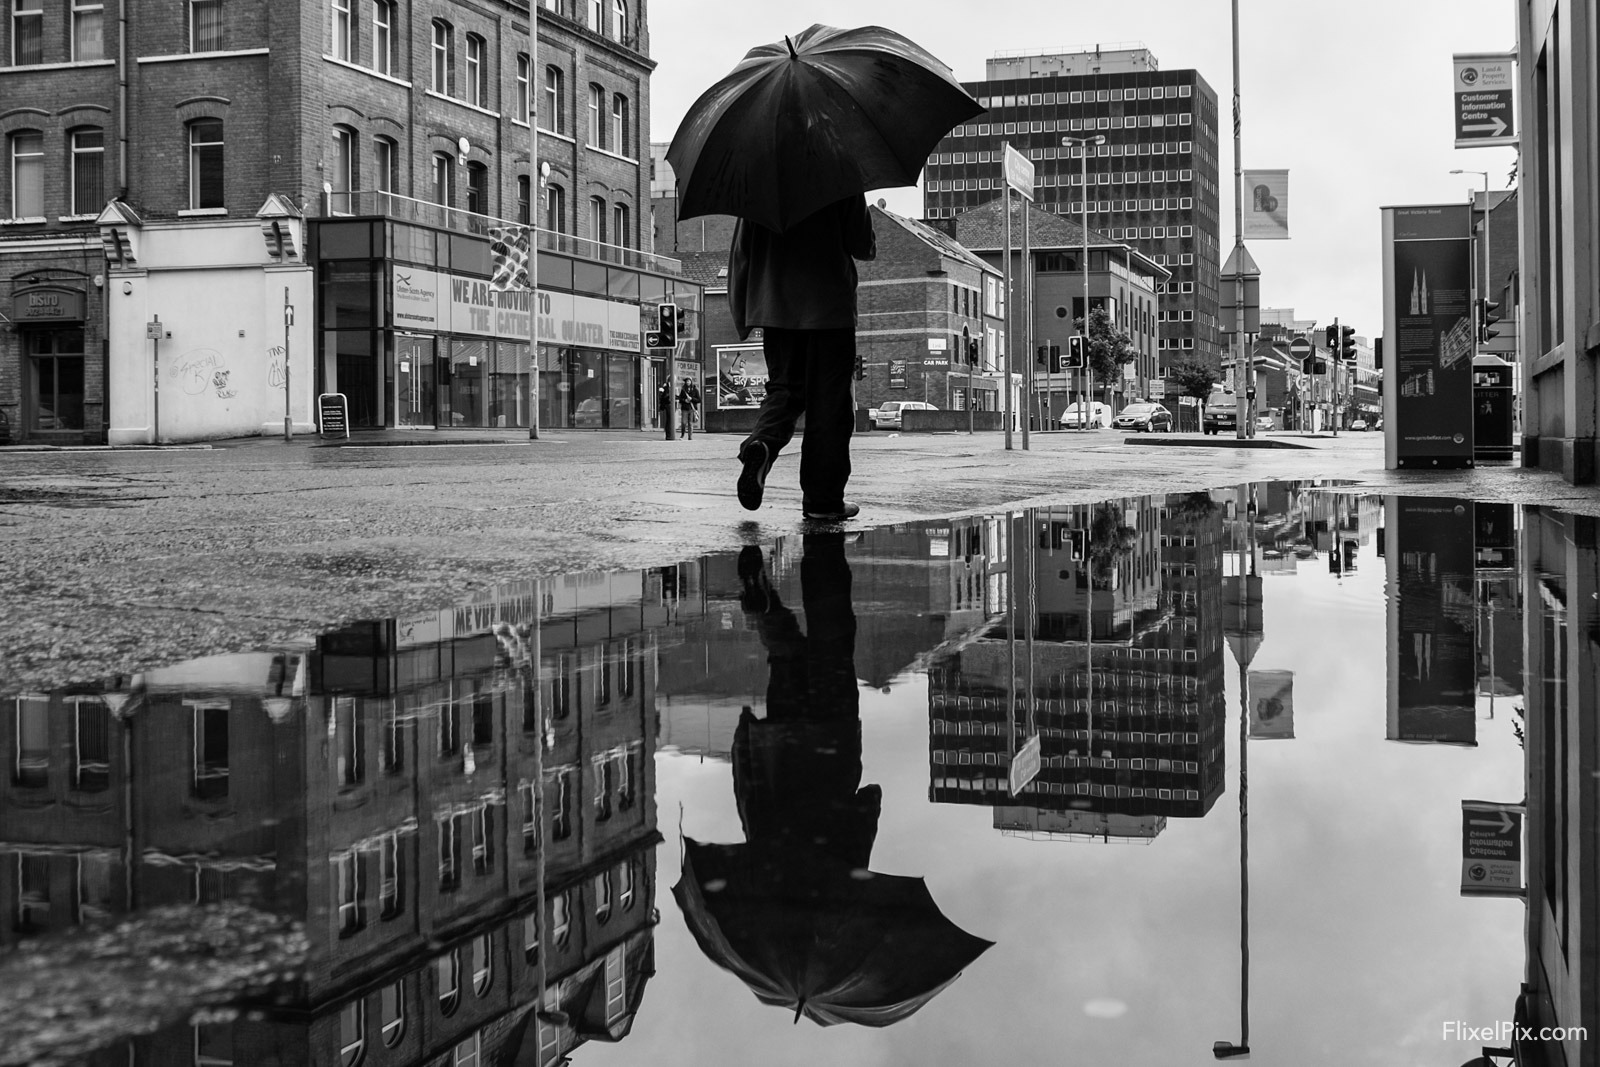 reflections in photography